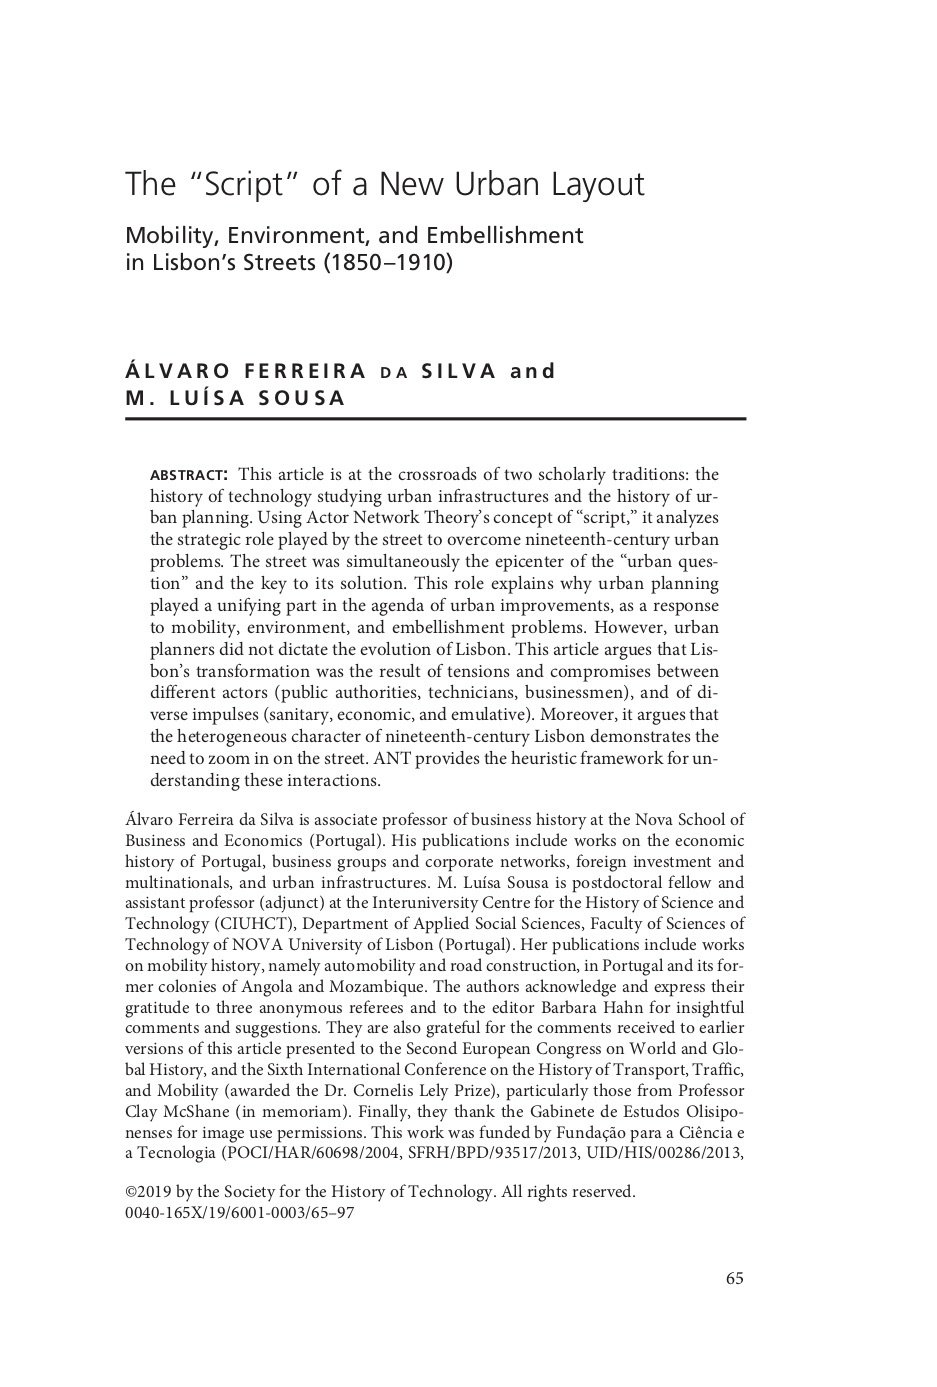 "The ""script"" of a new urban layout: mobility, environment and embellishment in Lisbon's streets (1850-1910), Capa"